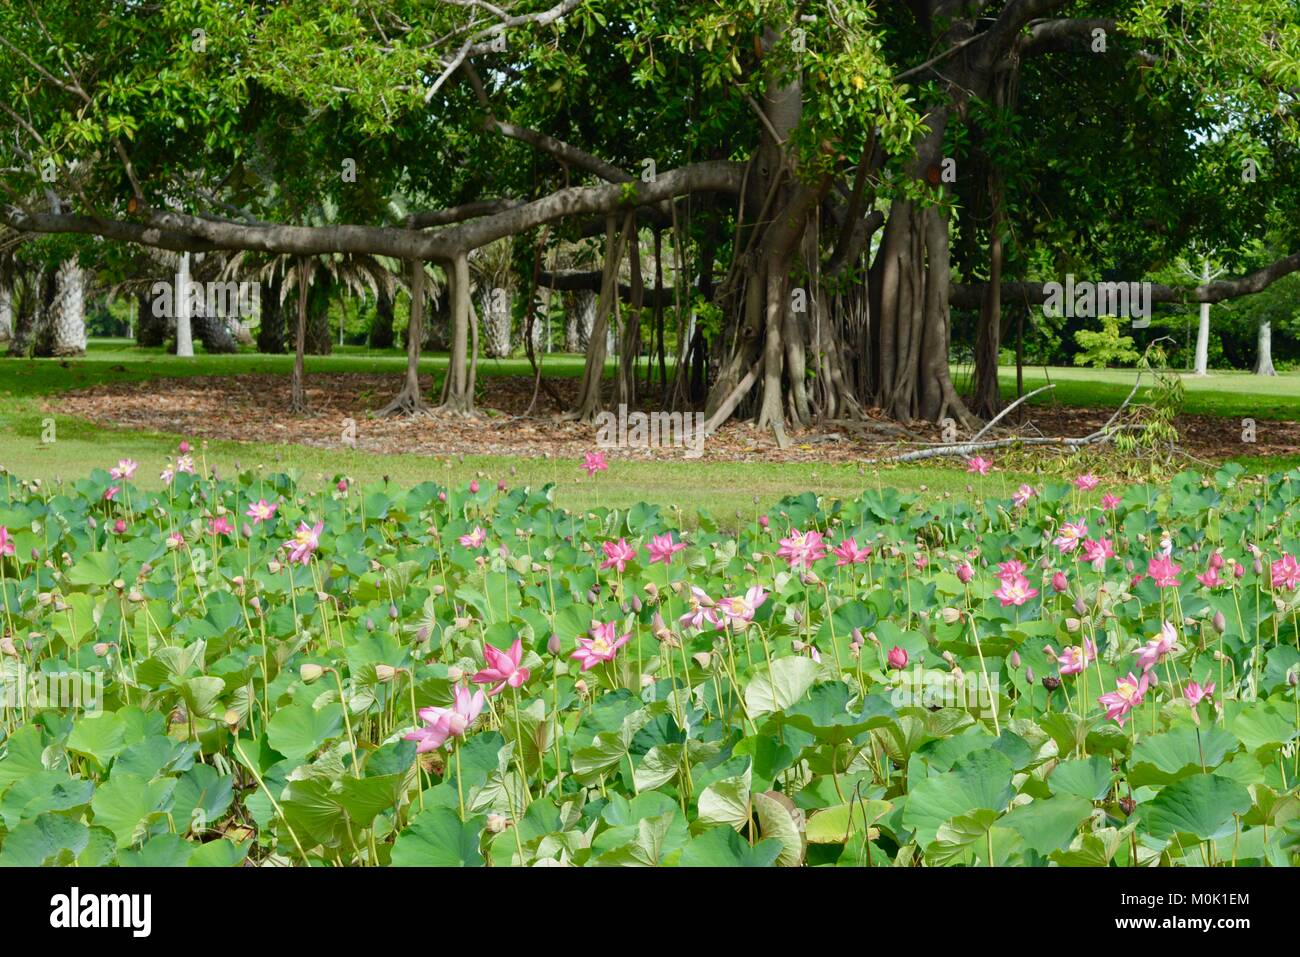 Pink lilies in full bloom, Anderson Park Botanic Gardens, Townsville, Queensland, Australia Stock Photo